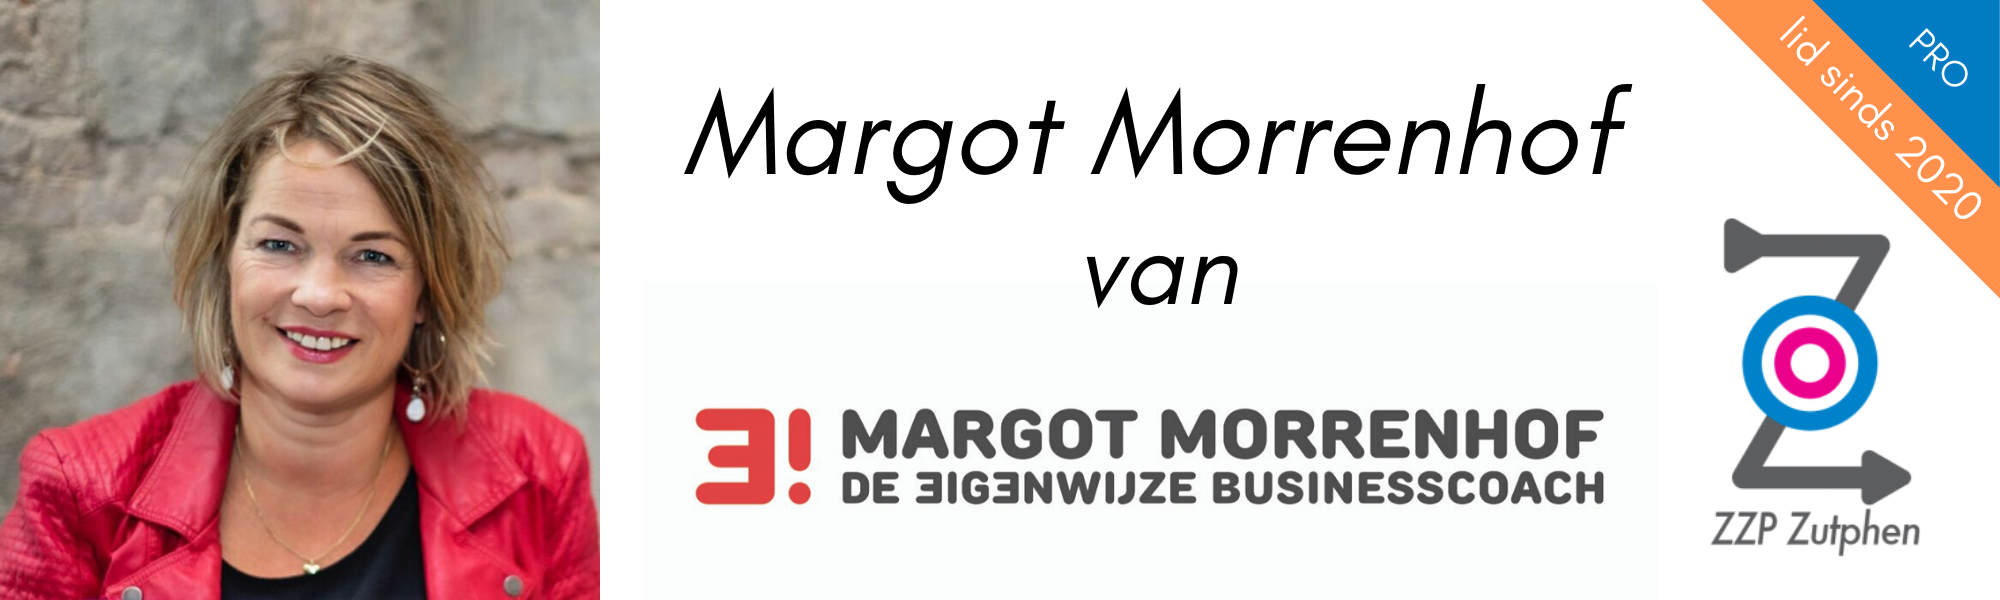 margot-morrenhof-businesscoach-deventer-zzp-zutphen